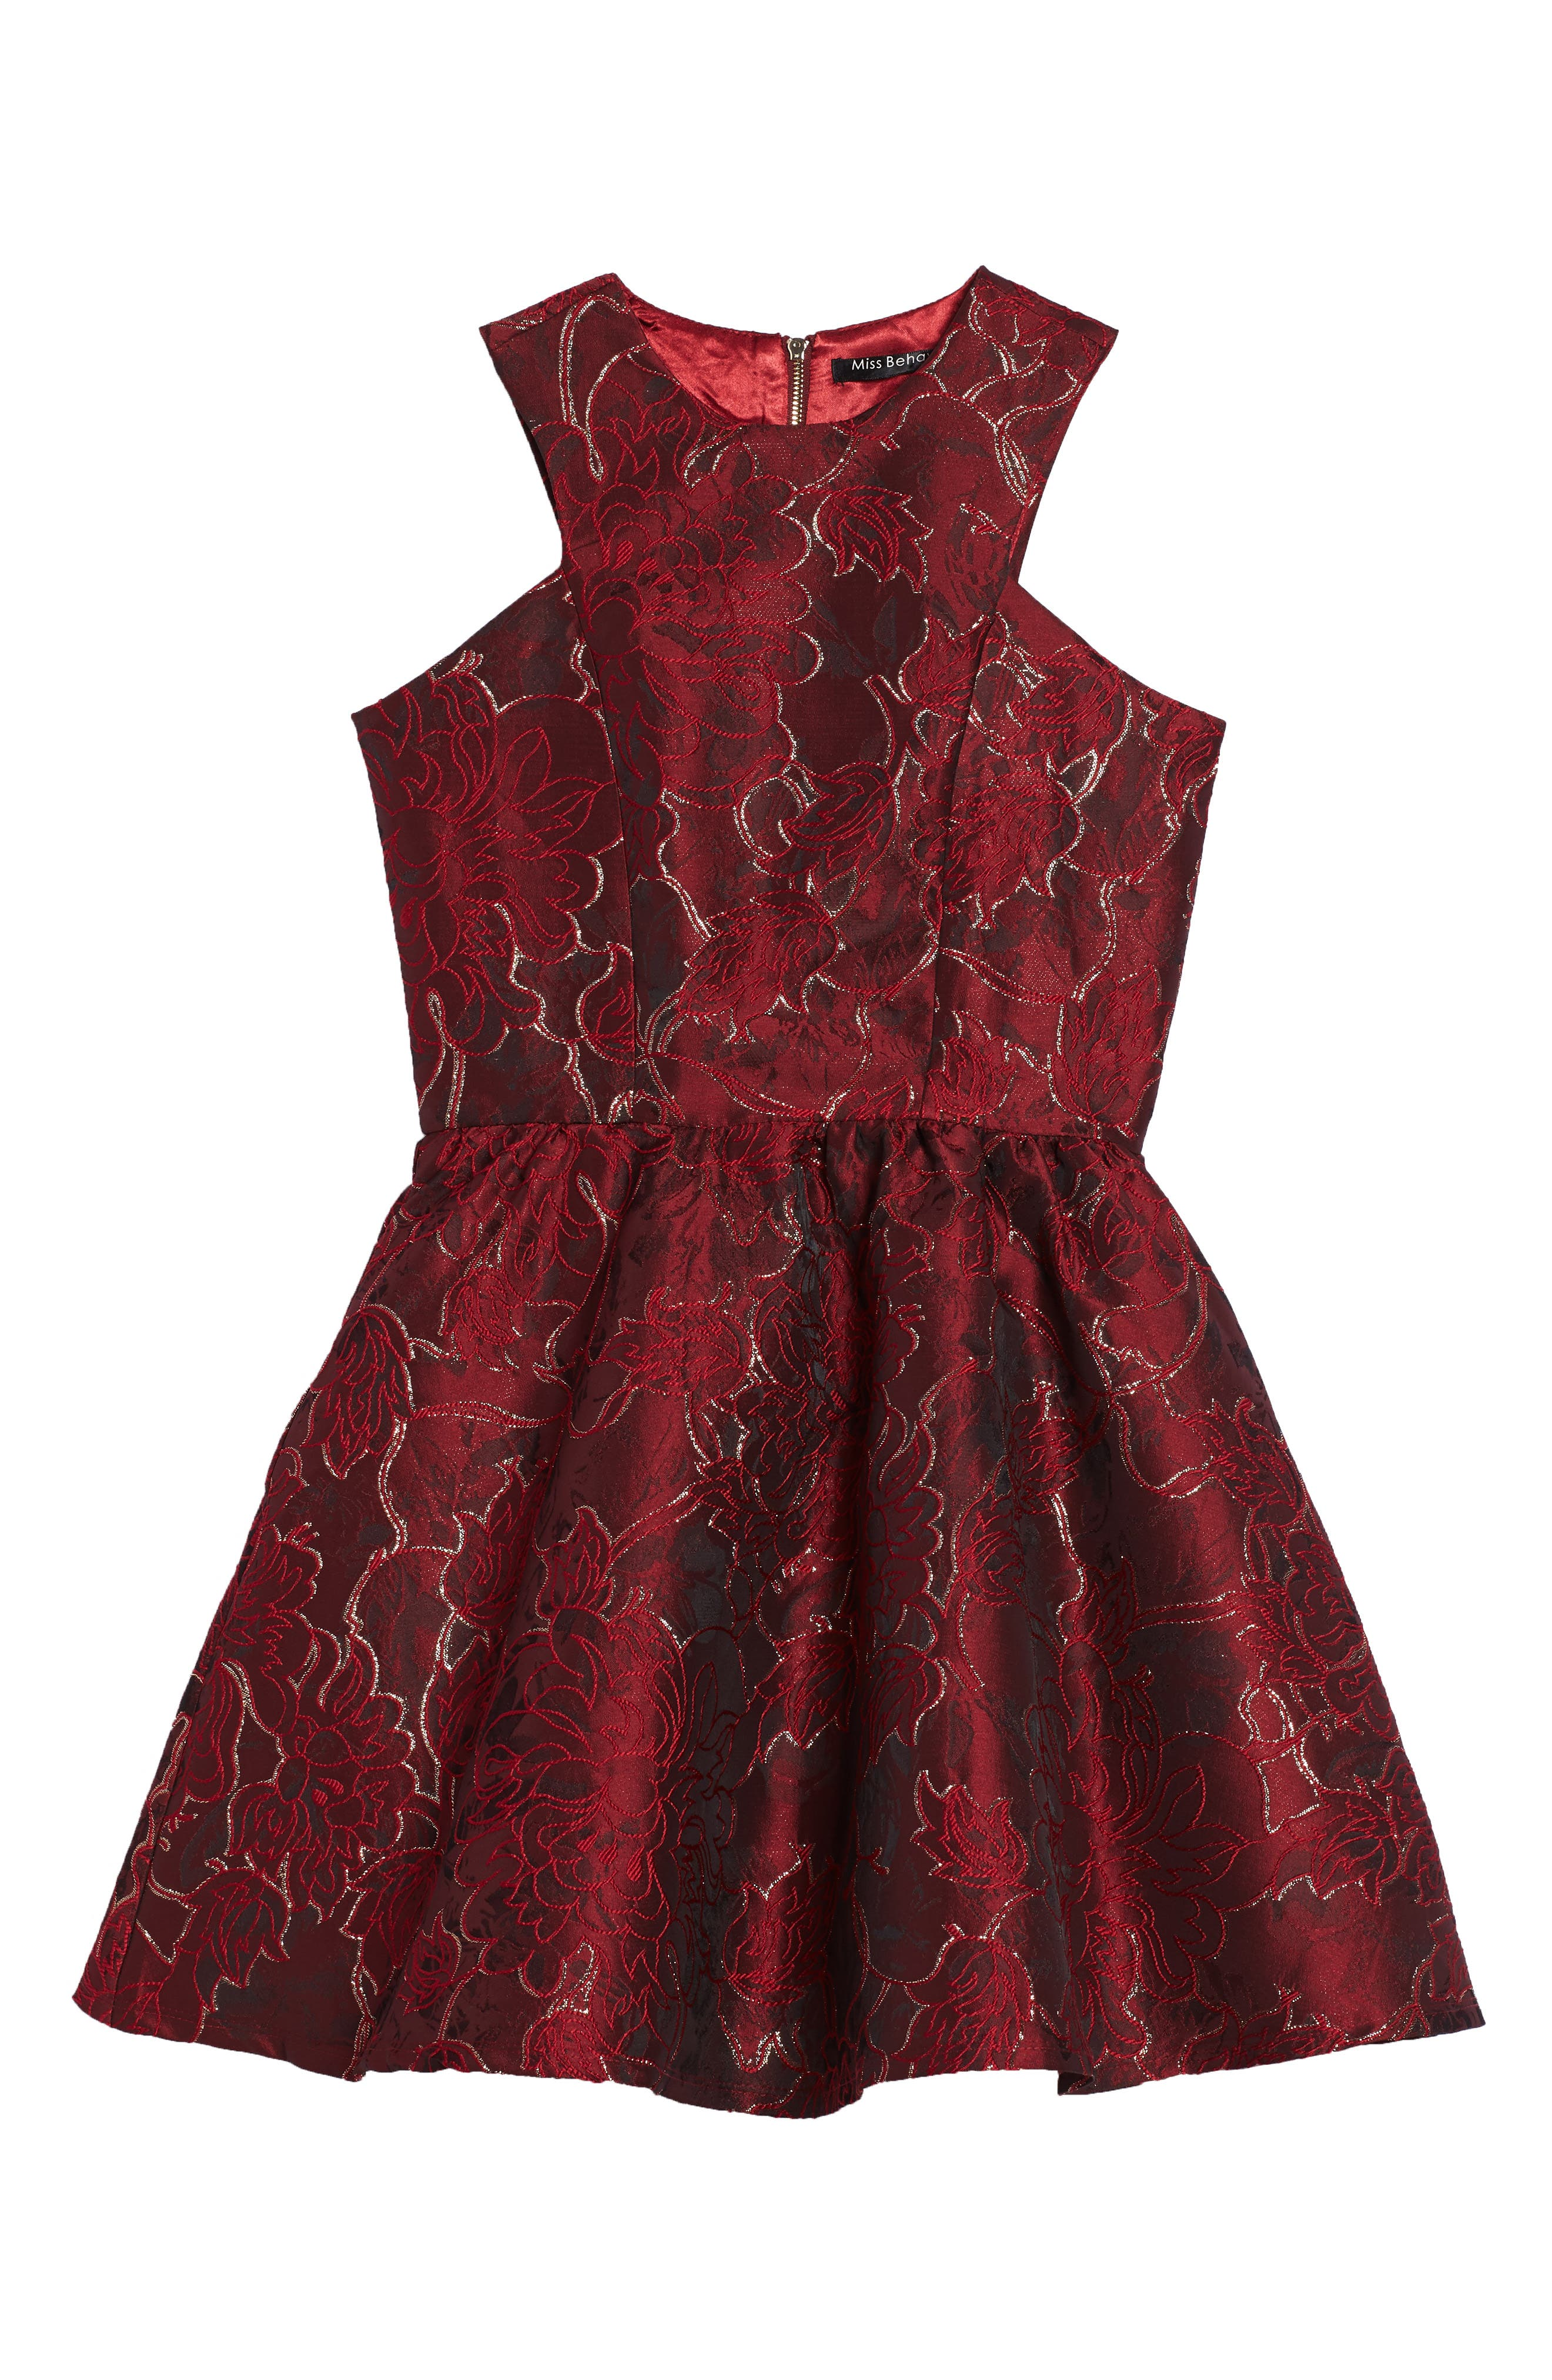 Main Image - Miss Behave Camilla Fit & Flare Brocade Dress (Big Girls)